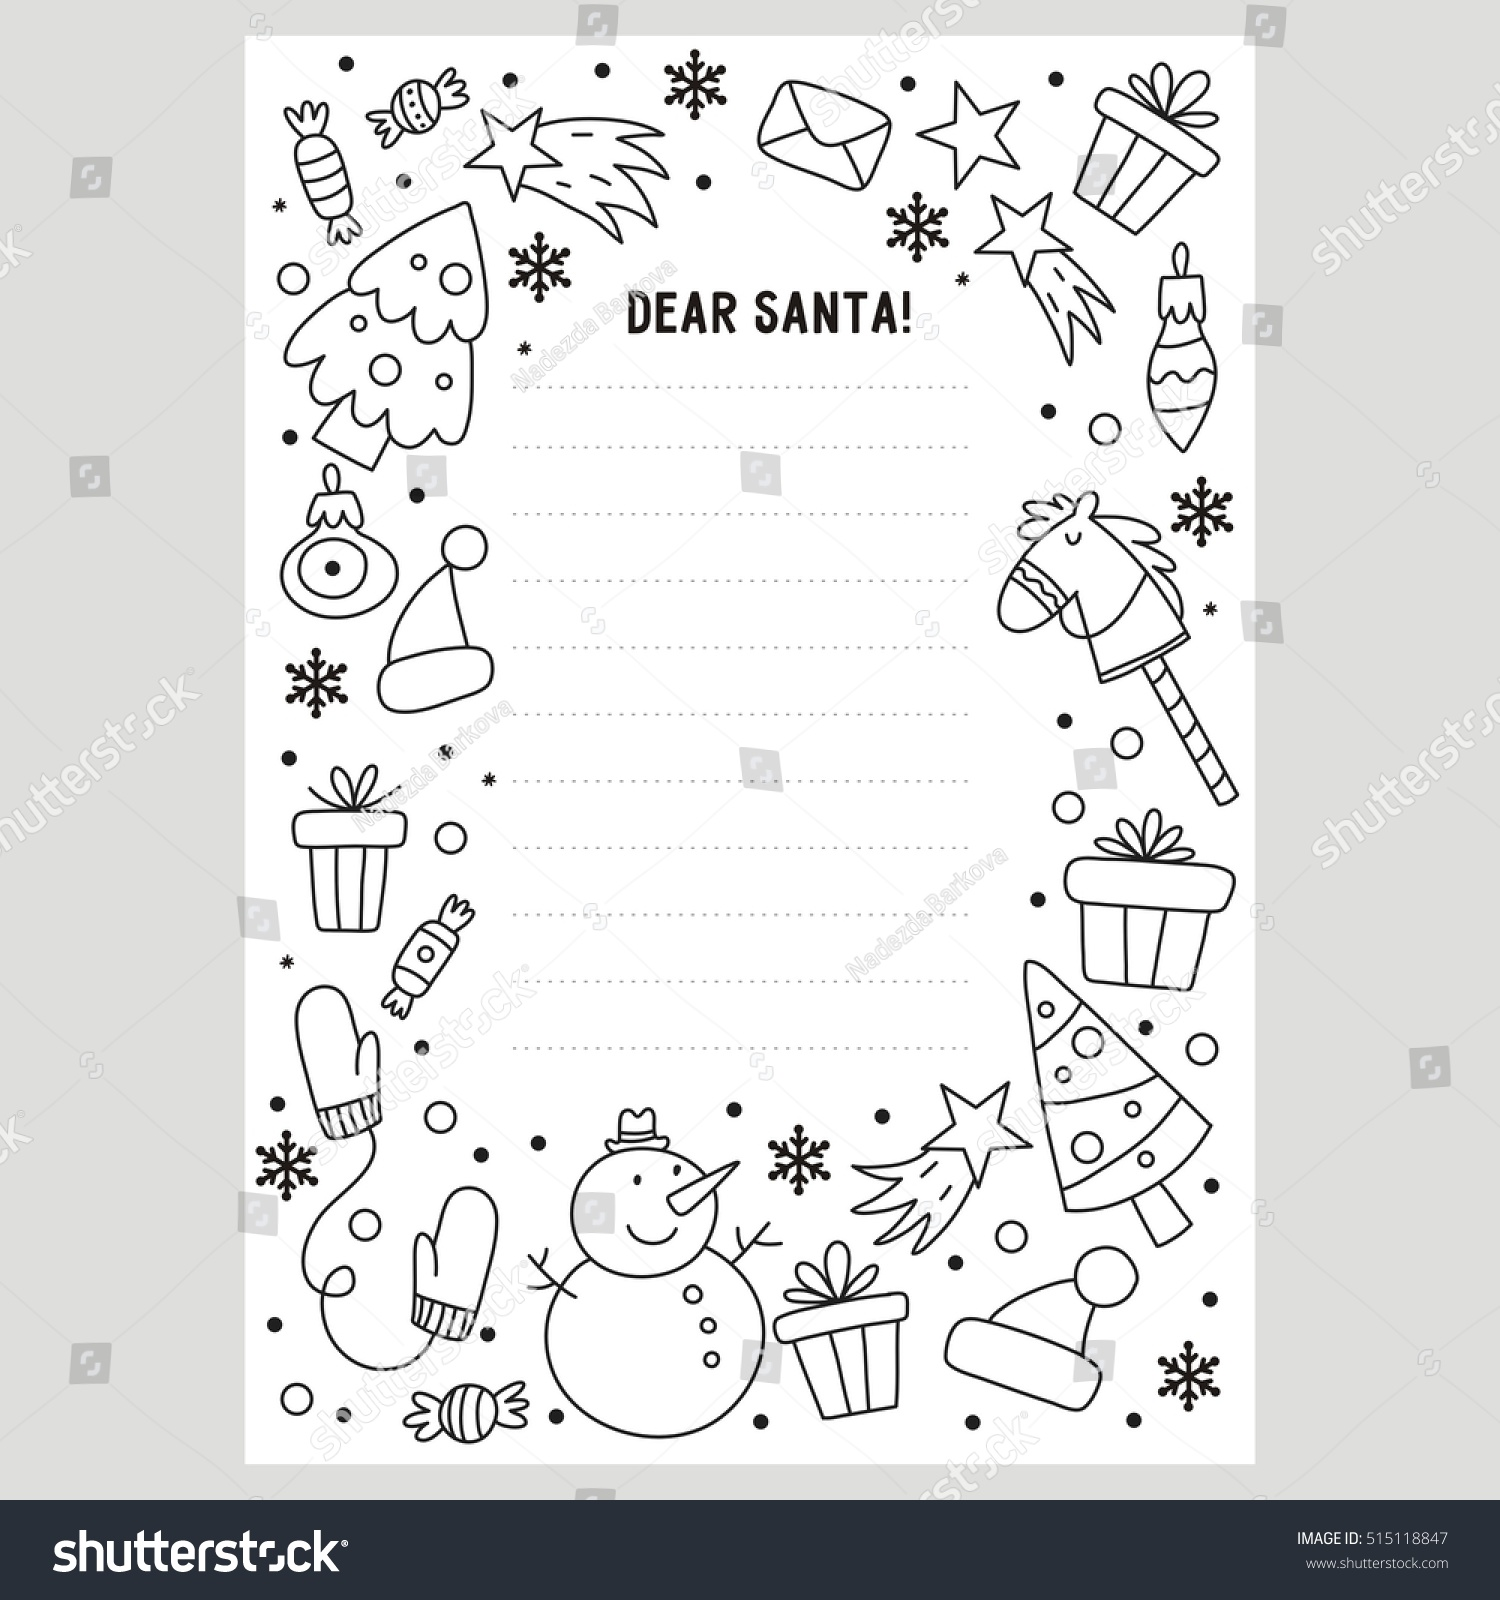 It's just a photo of Handy letter to santa coloring page